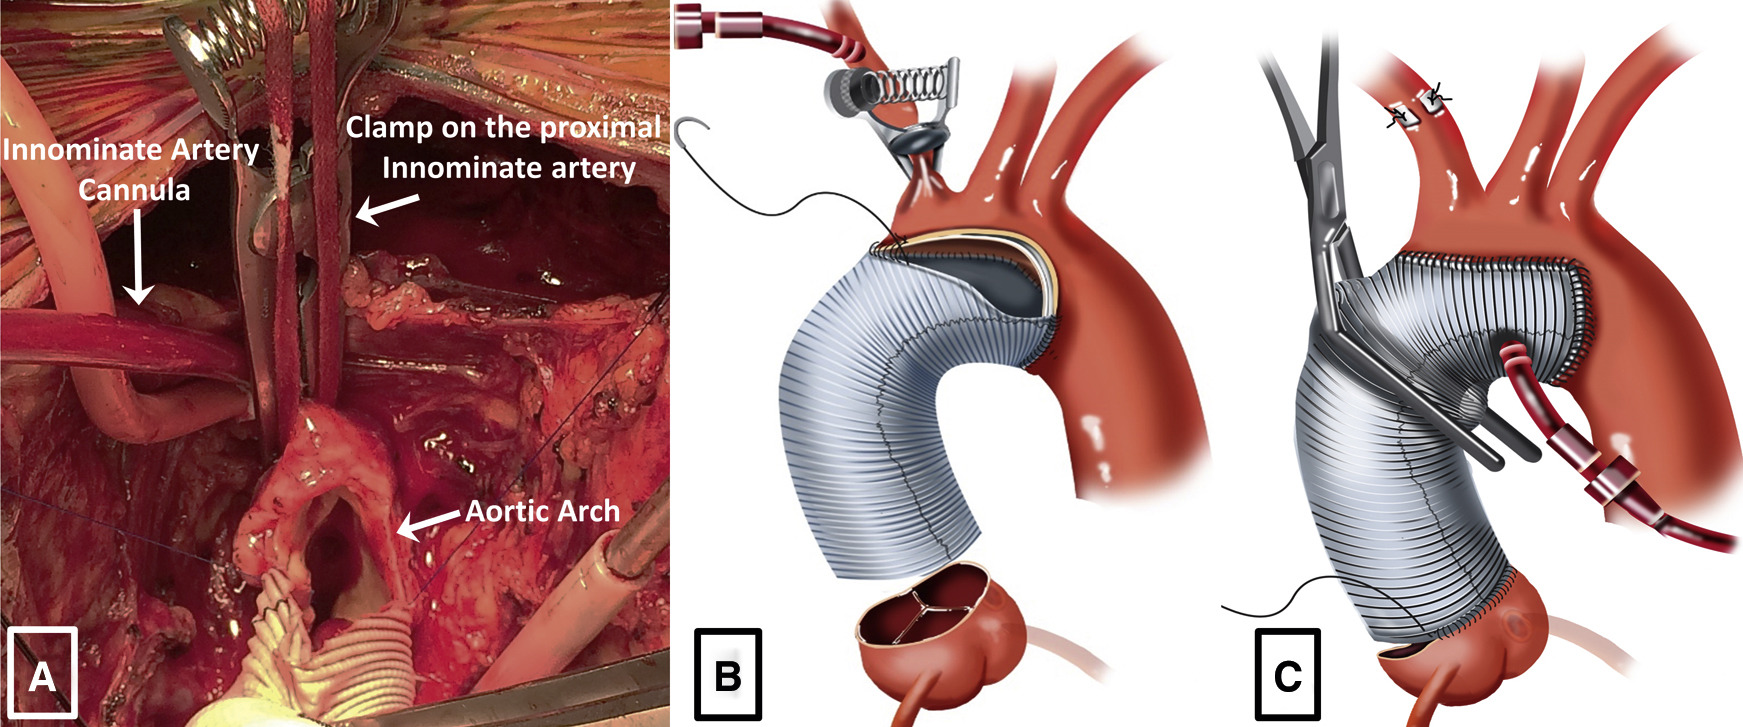 Direct Innominate Artery Cannulation An Alternate Technique For